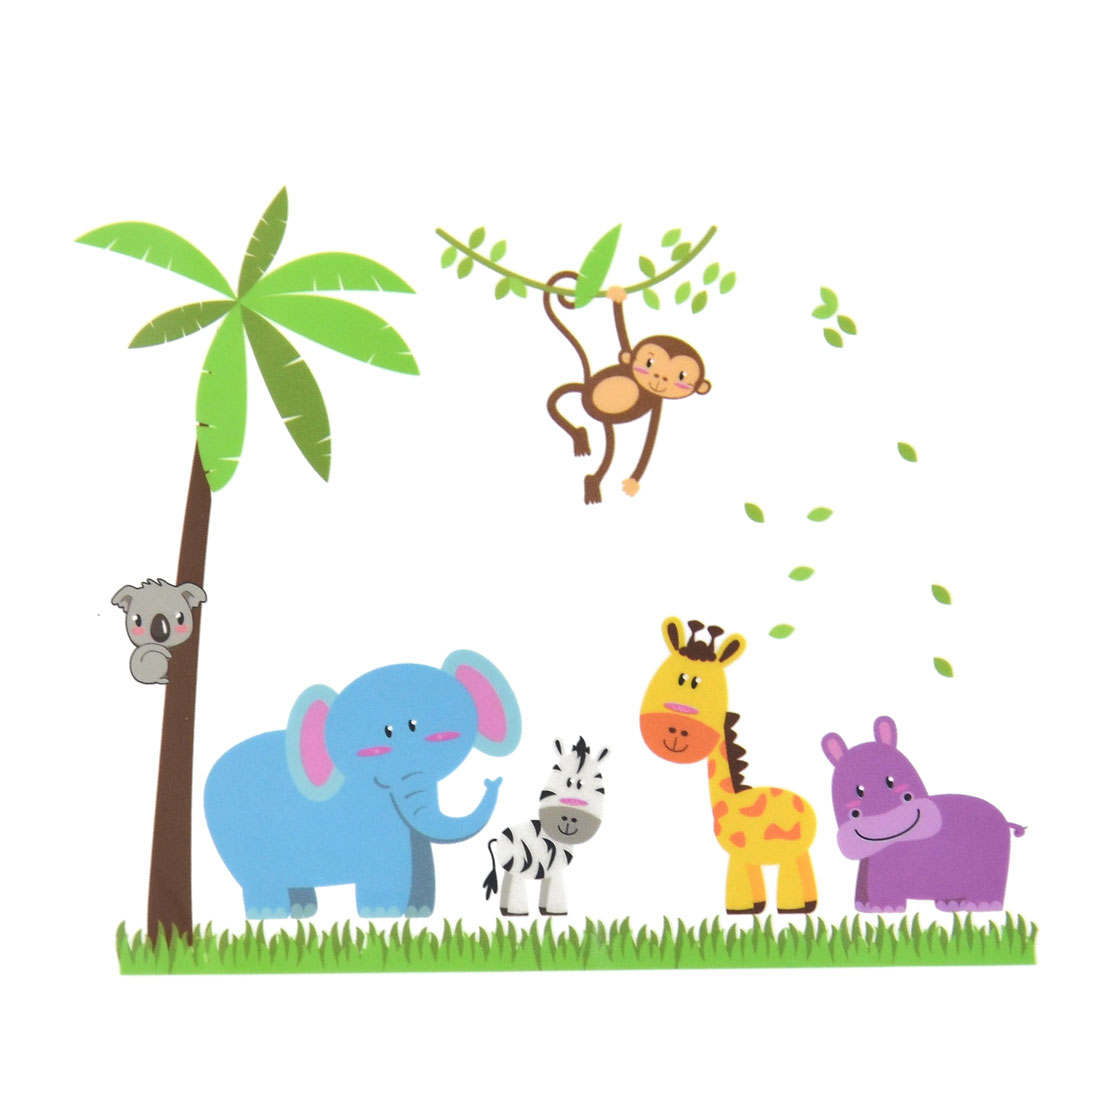 Bedroom PVC Animals Tree Print DIY Removable Wall Sticker Decal Mural 60 x 90cm